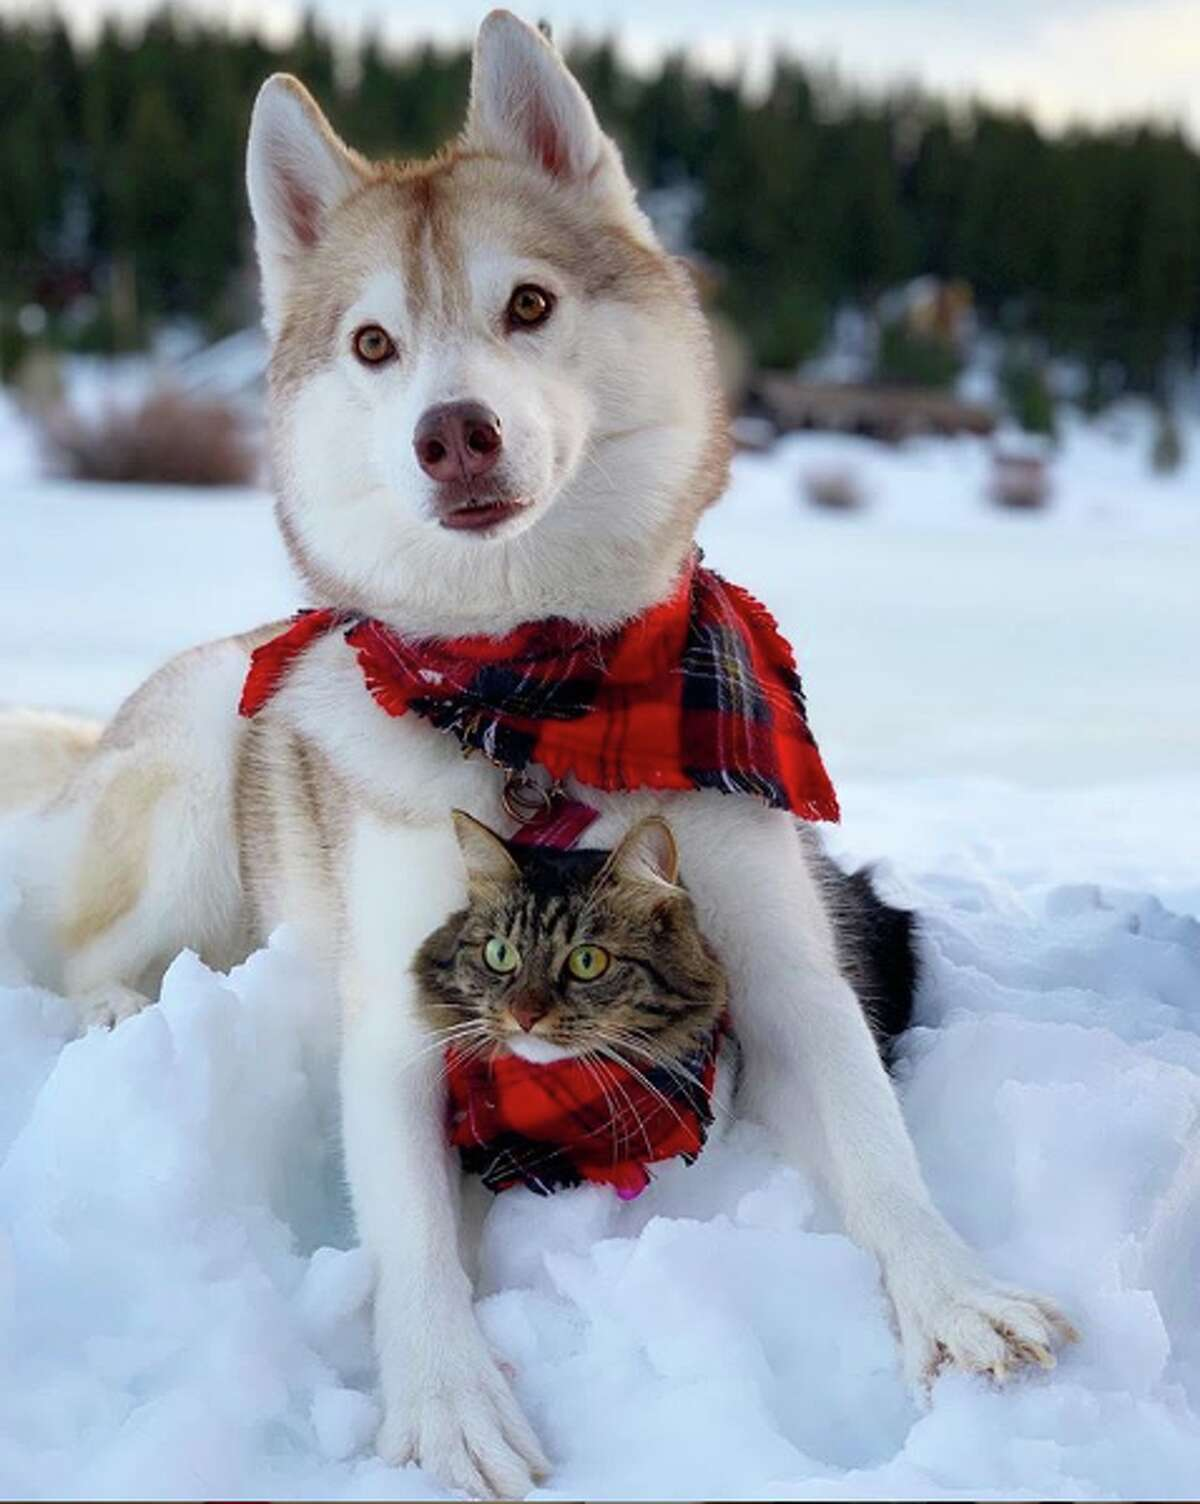 Lilo and Rosie IG: @lilothehusky Breeds: Husky and unknown (possibly a Maine Coon Mix) # of followers: 504K